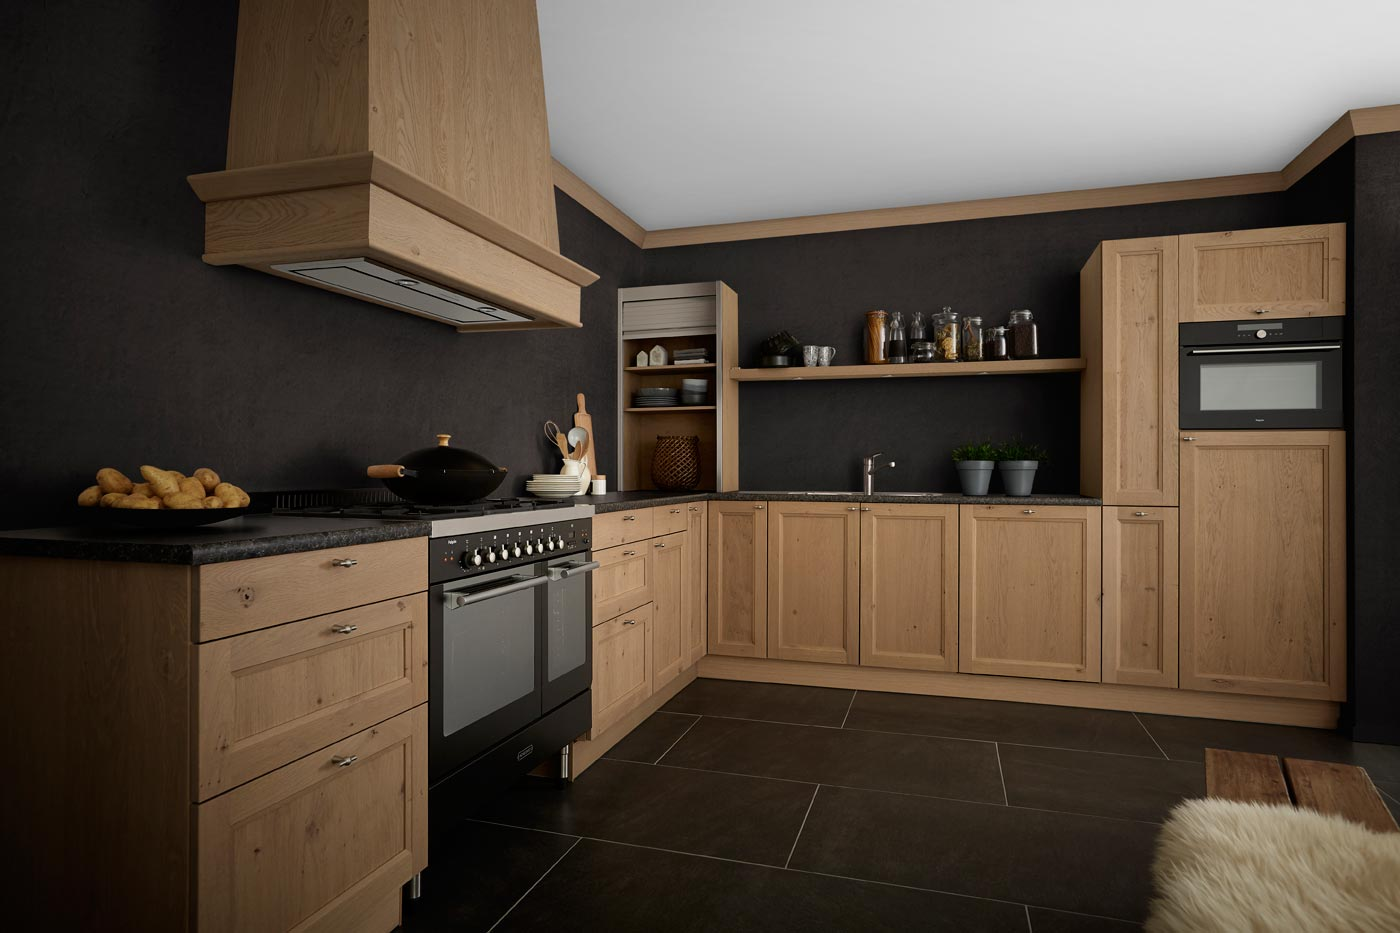 Countryside wooden kitchen Leybourne grey